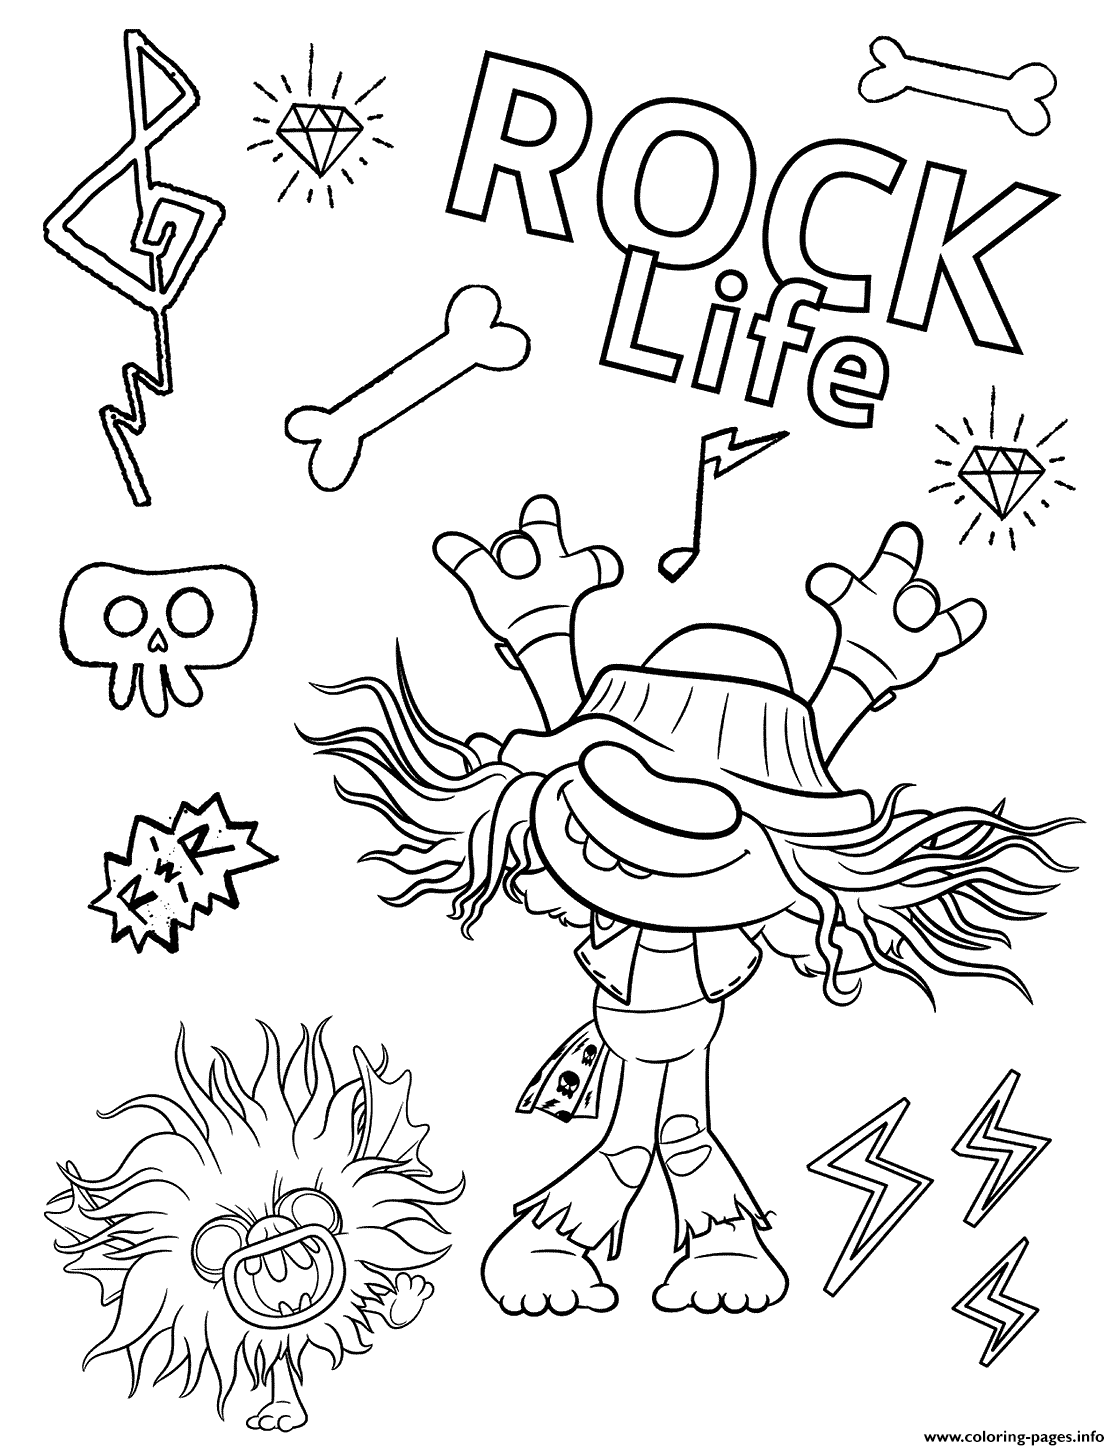 Hard Rock Trolls 2 Coloring Pages Printable